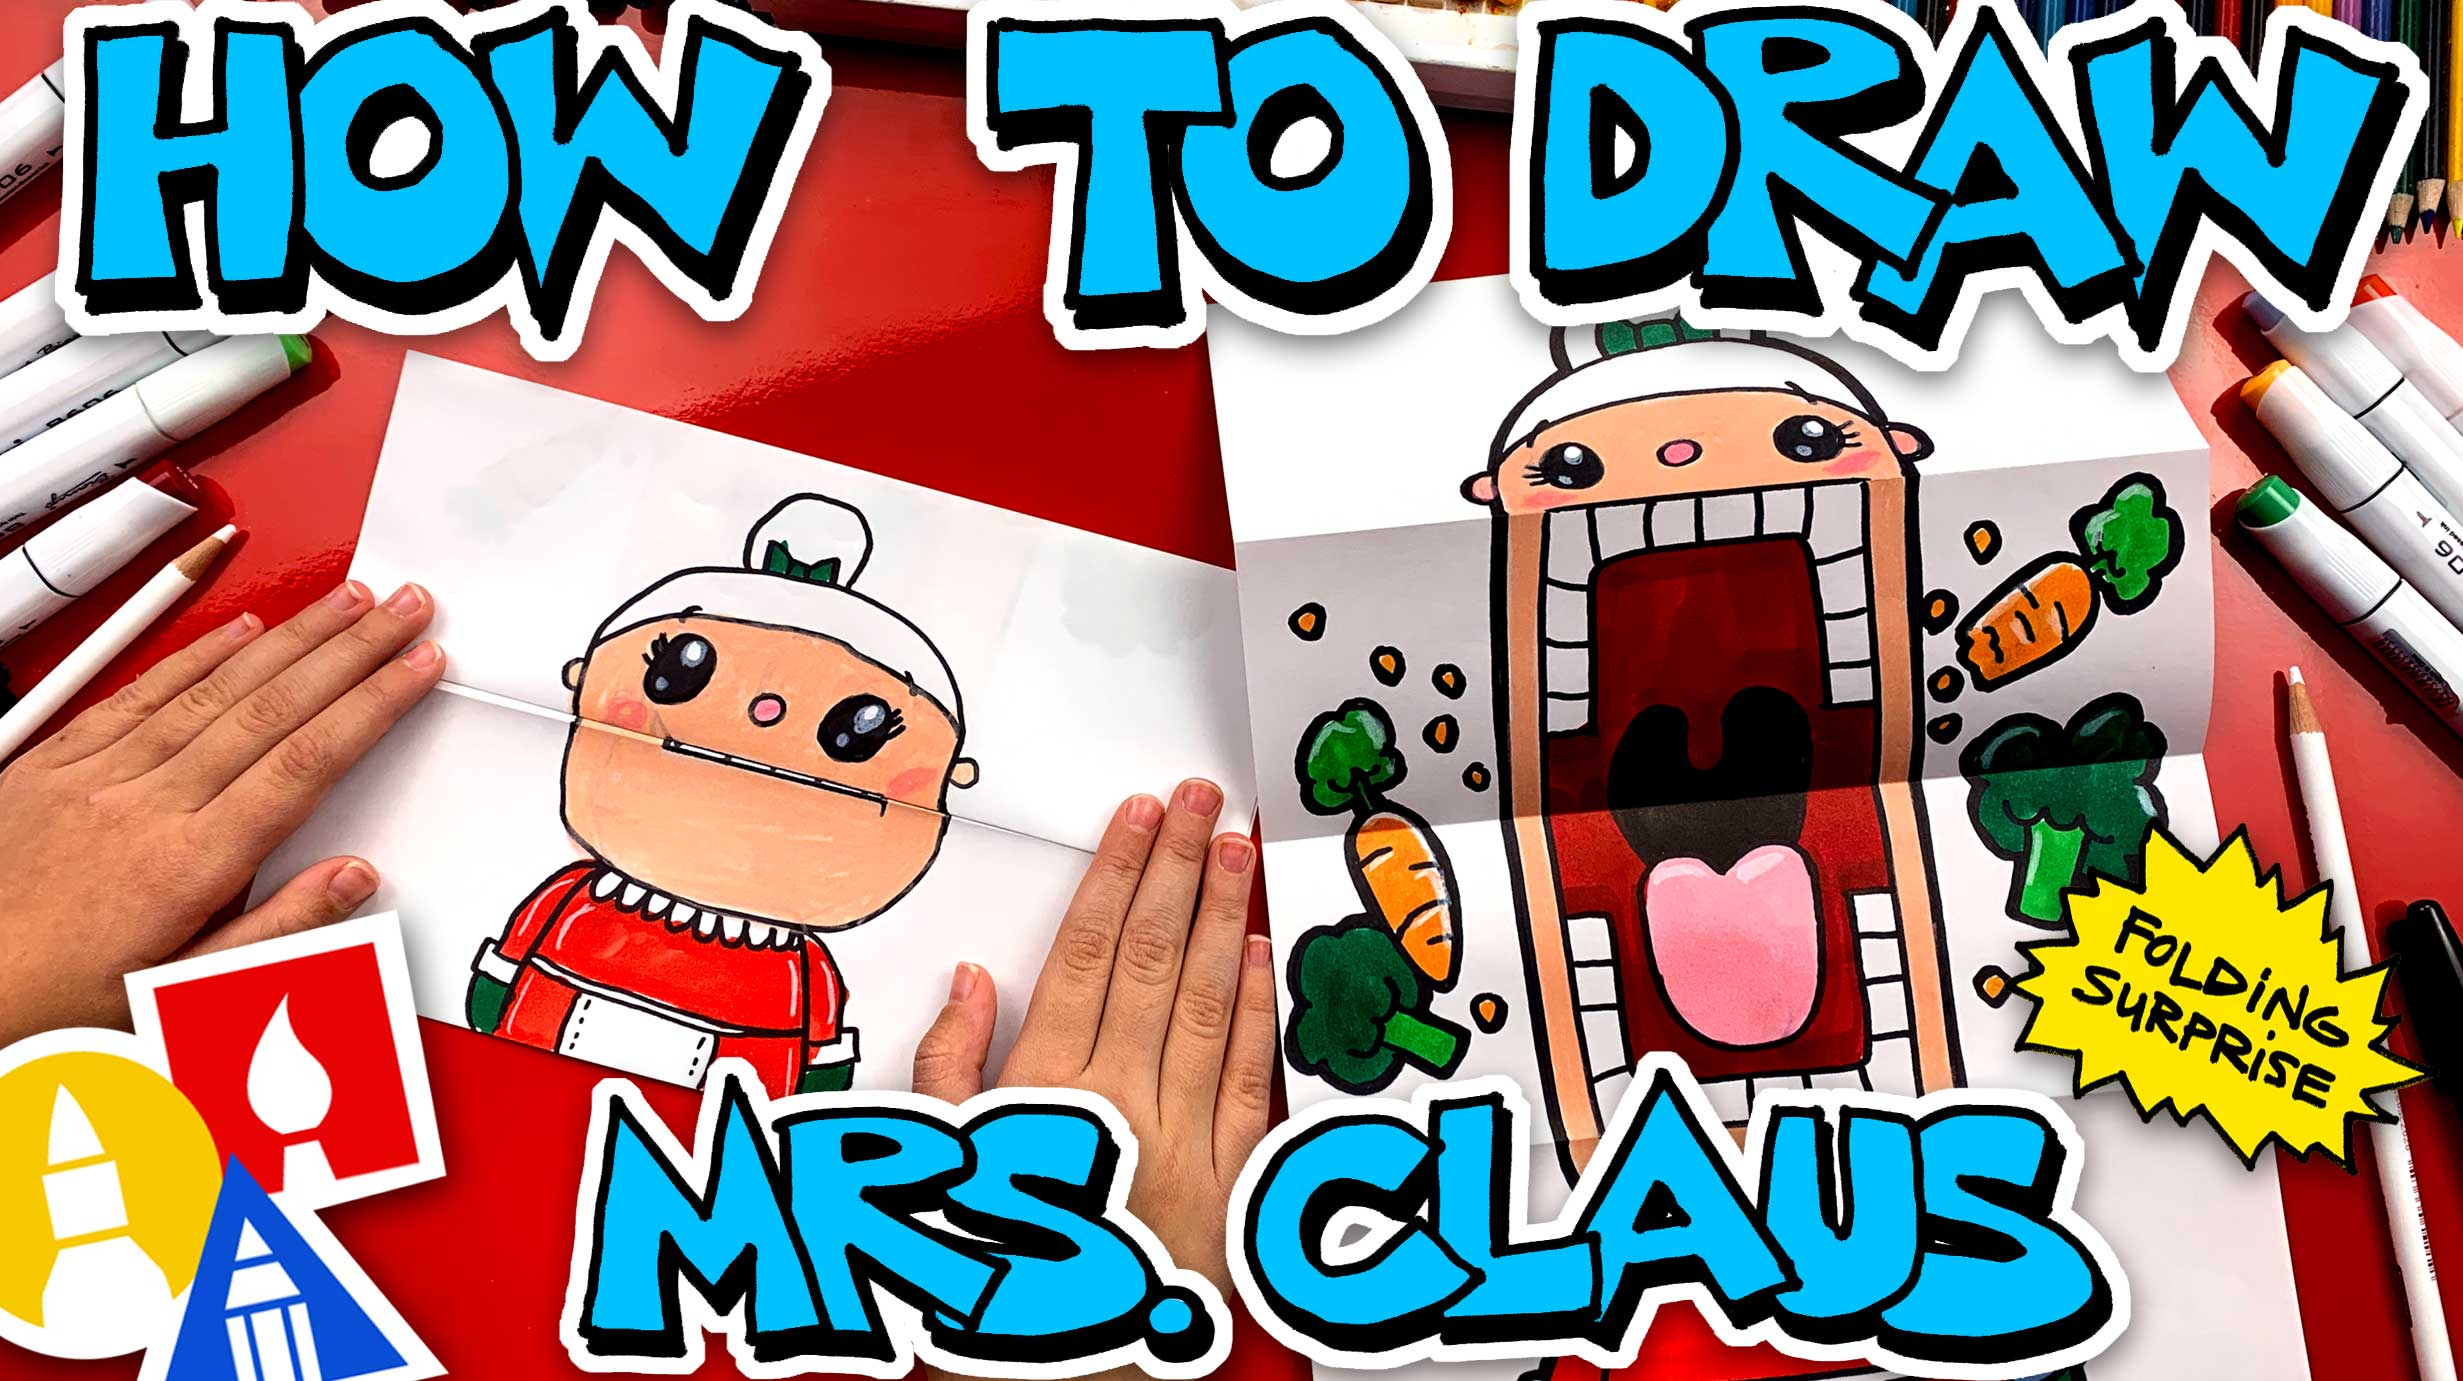 How To Draw Crazy Veggie Mrs Claus Puppet - Folding Surprise - Art For Kids Hub